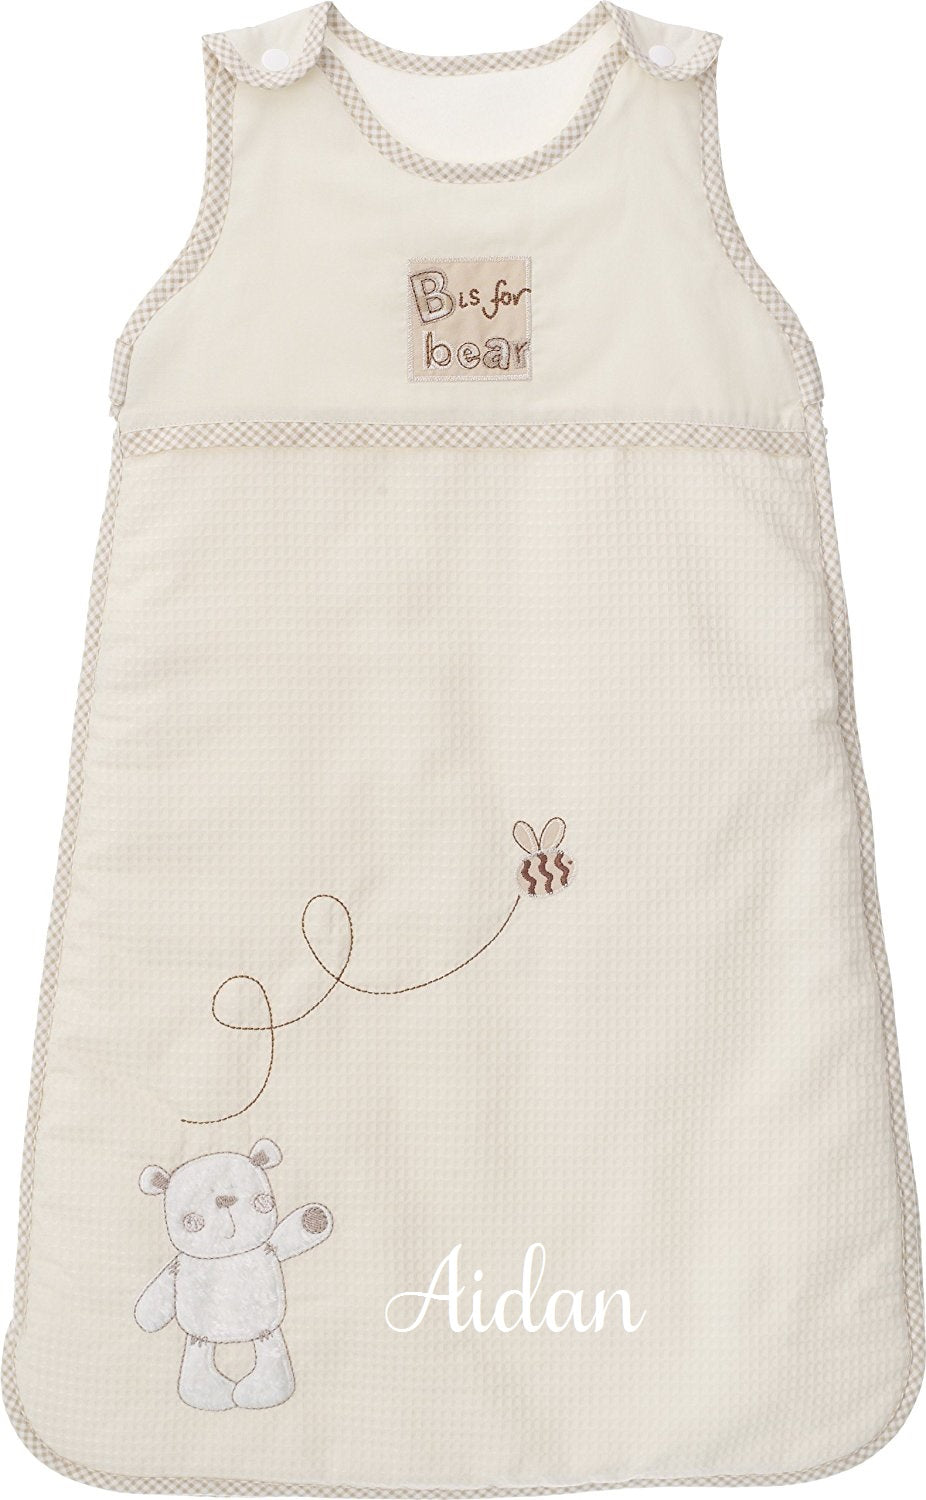 Baby Sleeping Bag- Ecru